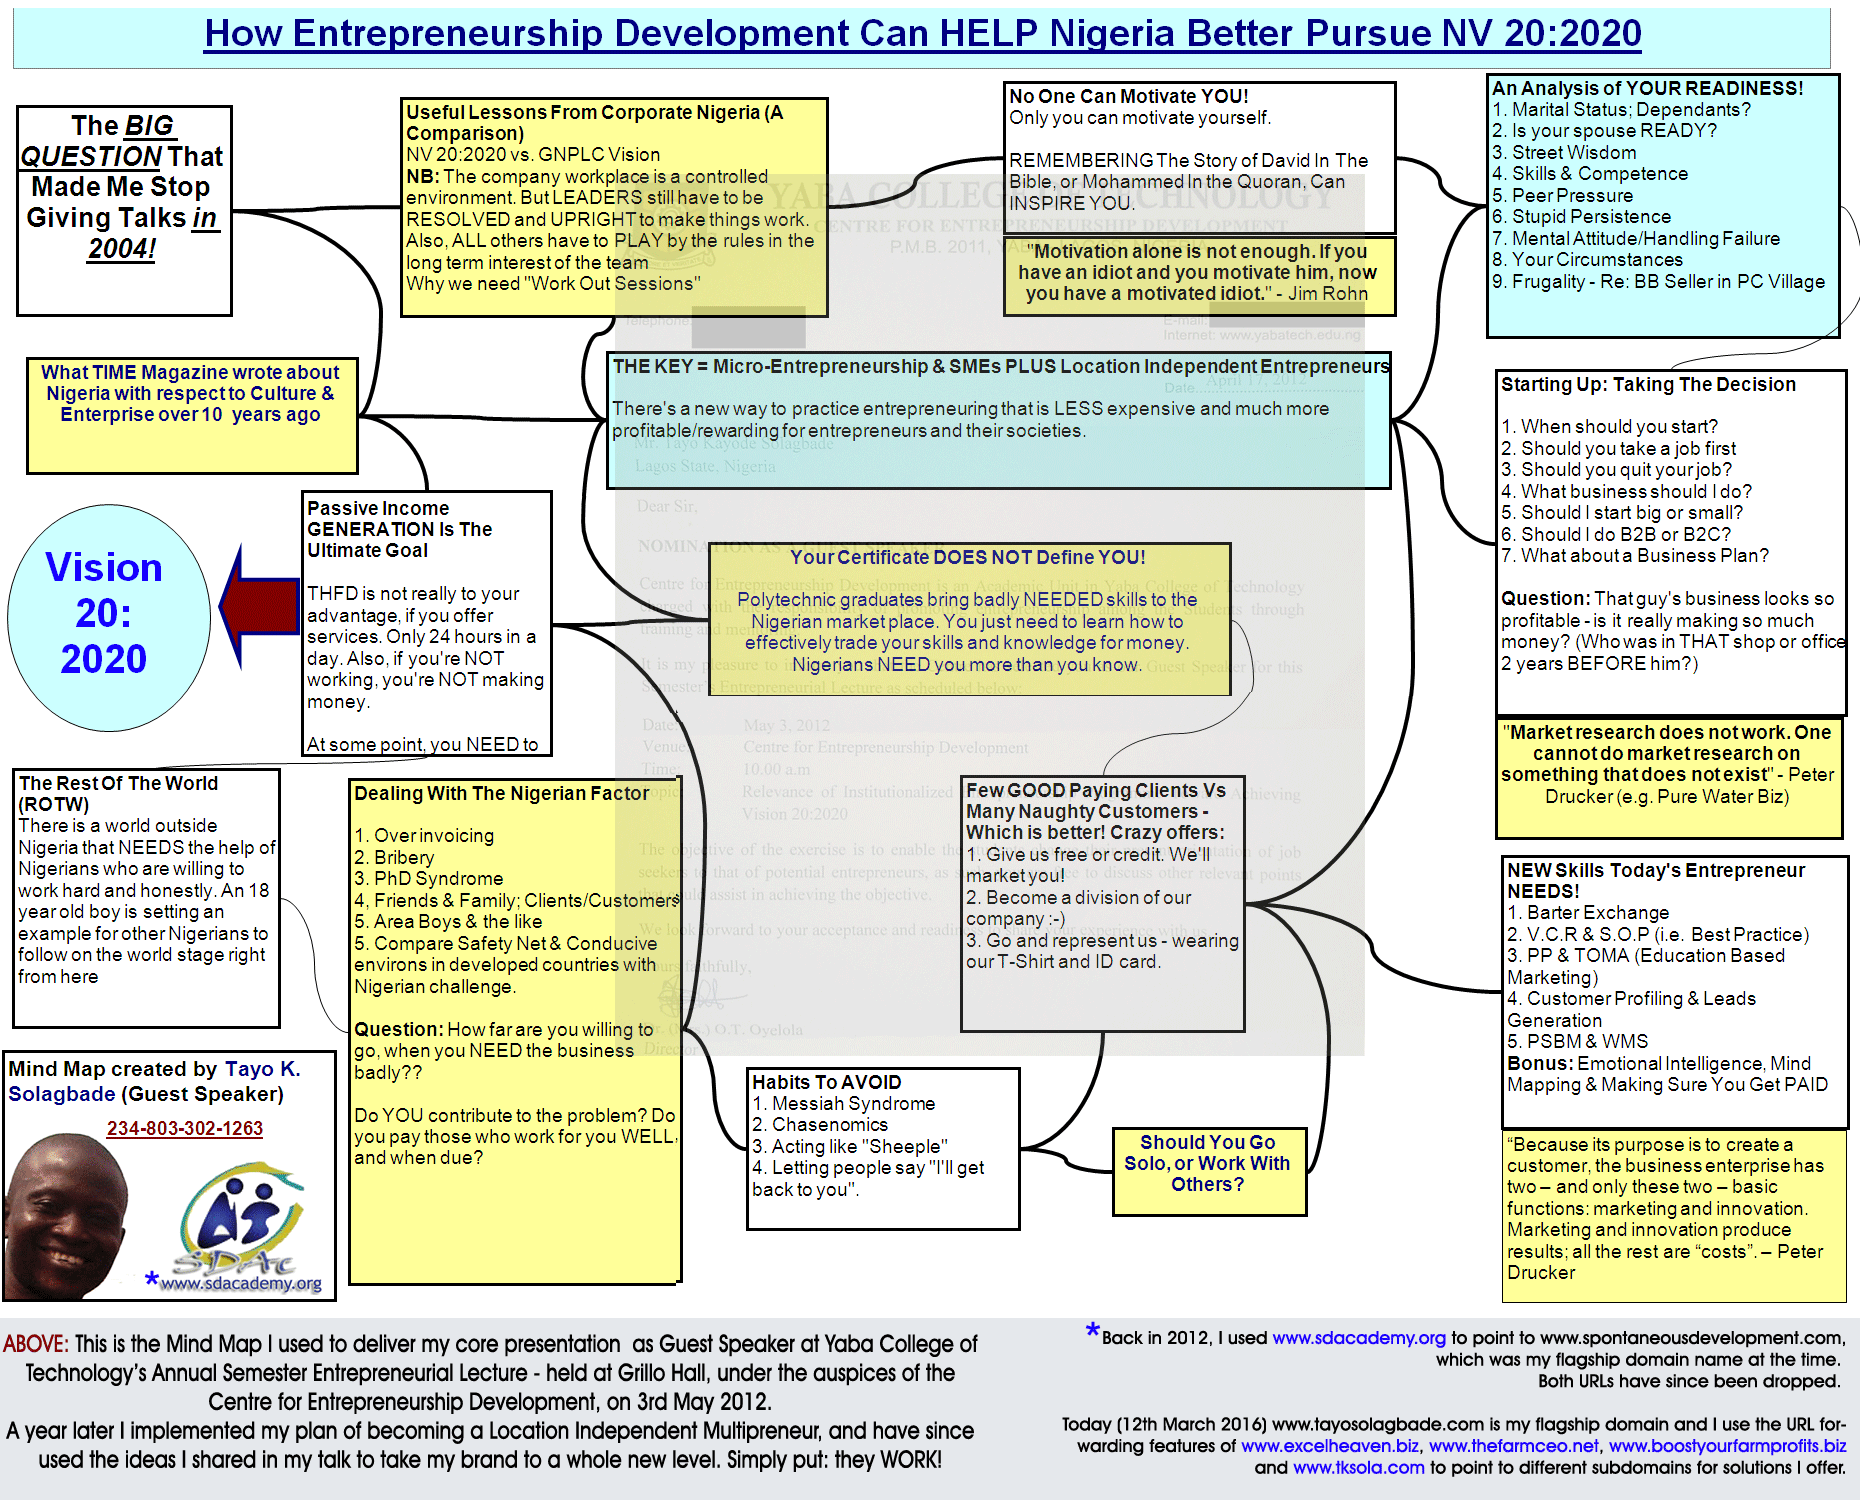 Your certificate does not define you mind map for my a year later i implemented my plan of becoming a location independent multipreneur and have since used the ideas i shared in my talk to take my brand to a xflitez Image collections